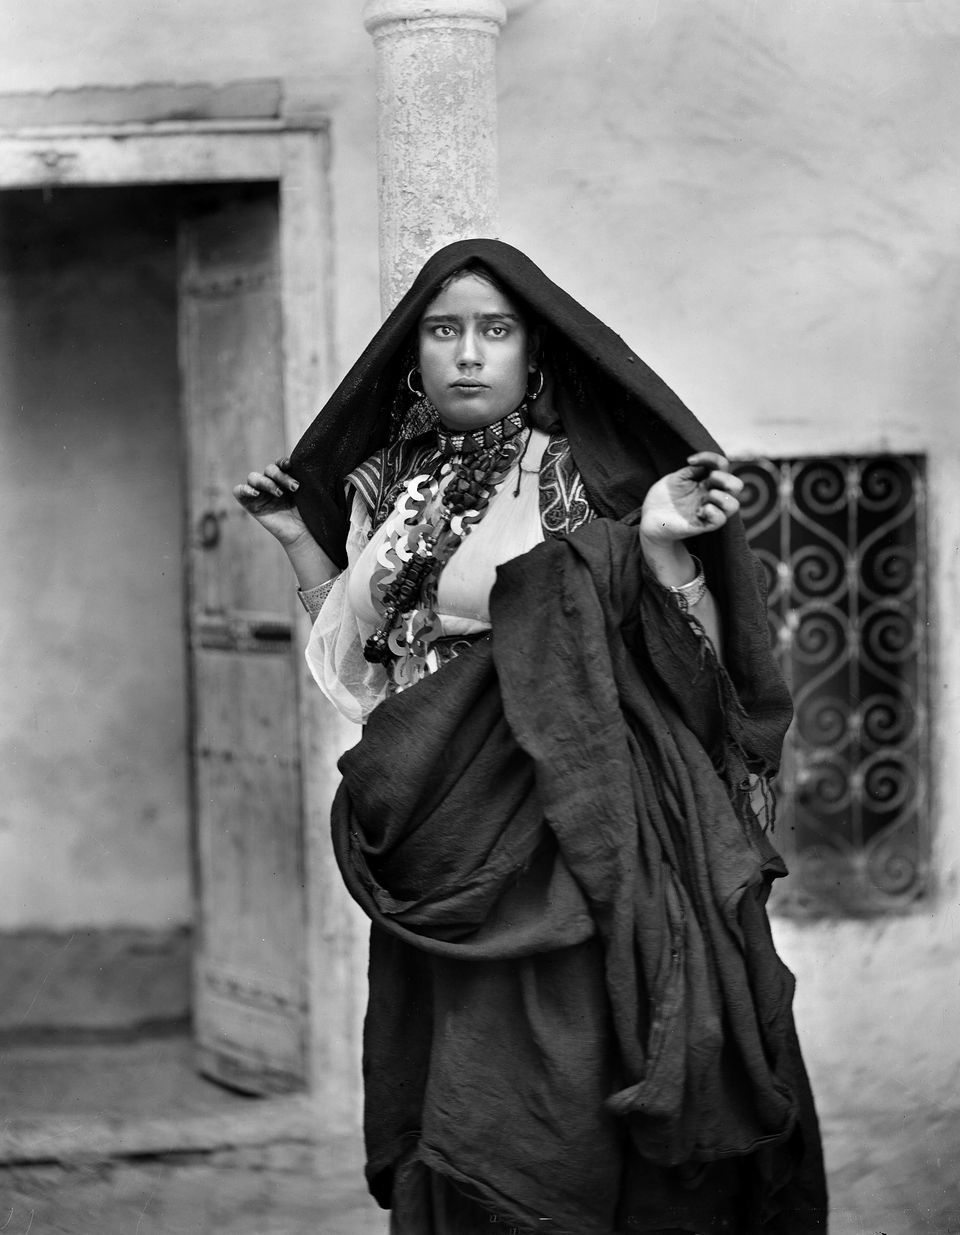 Photograph of woman wearing skhab necklace, c. 1890